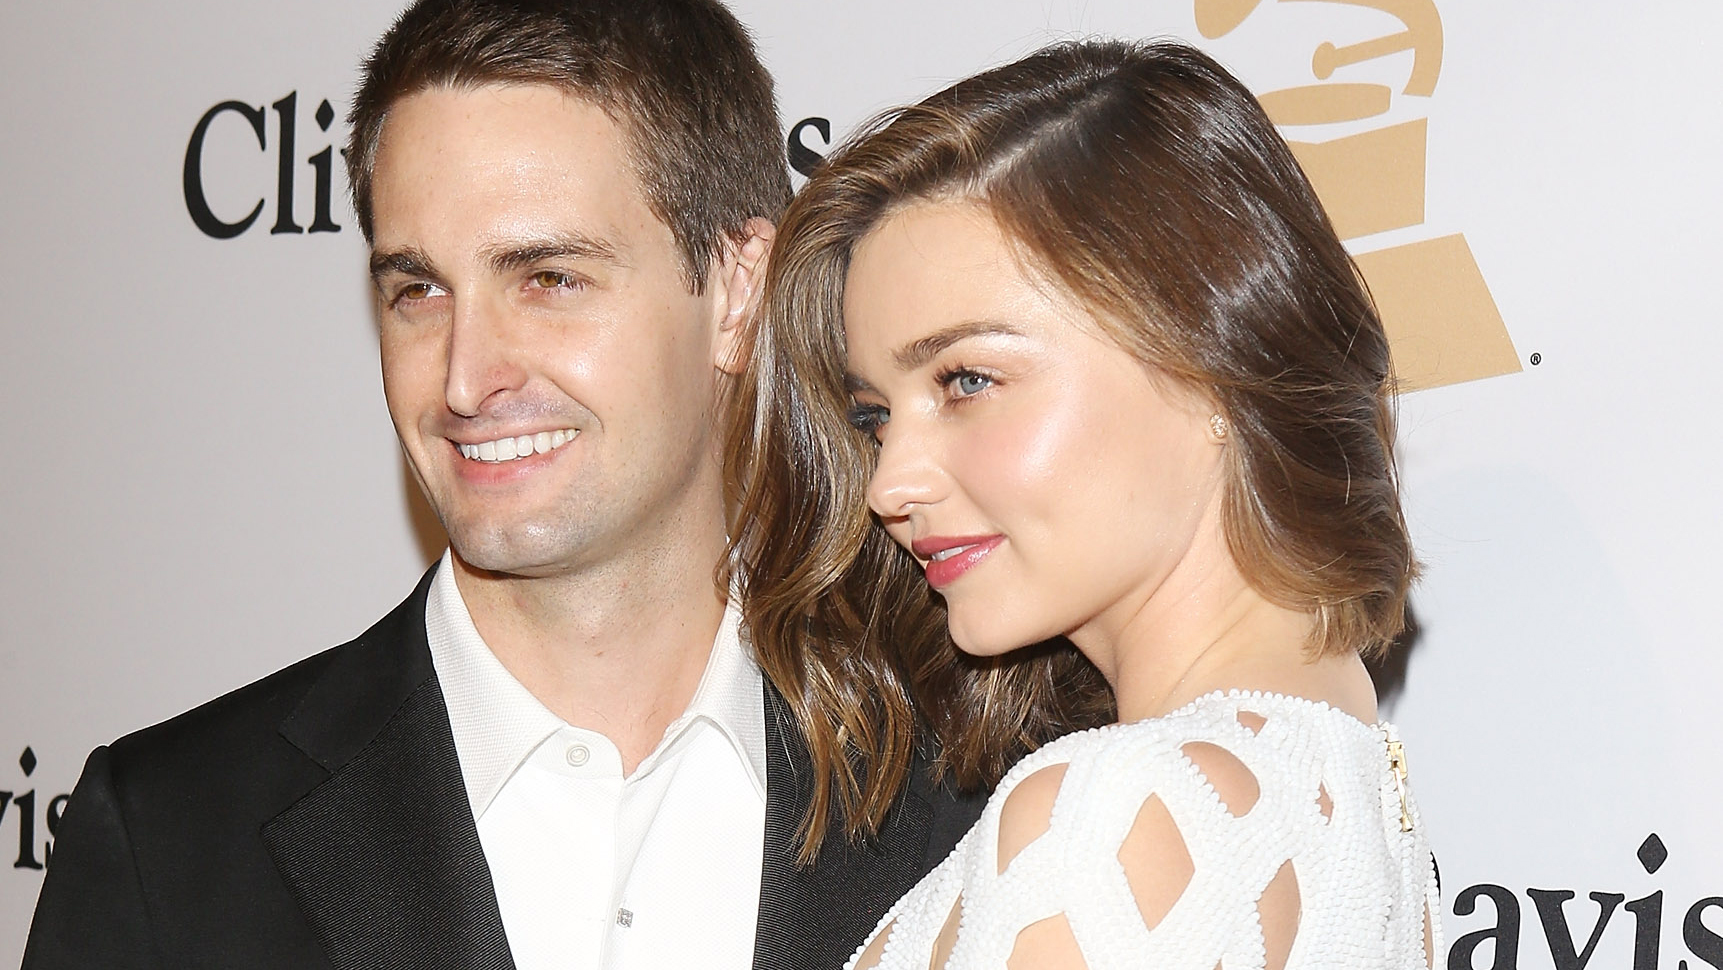 There's something amiss with Miranda Kerr's engagement photo